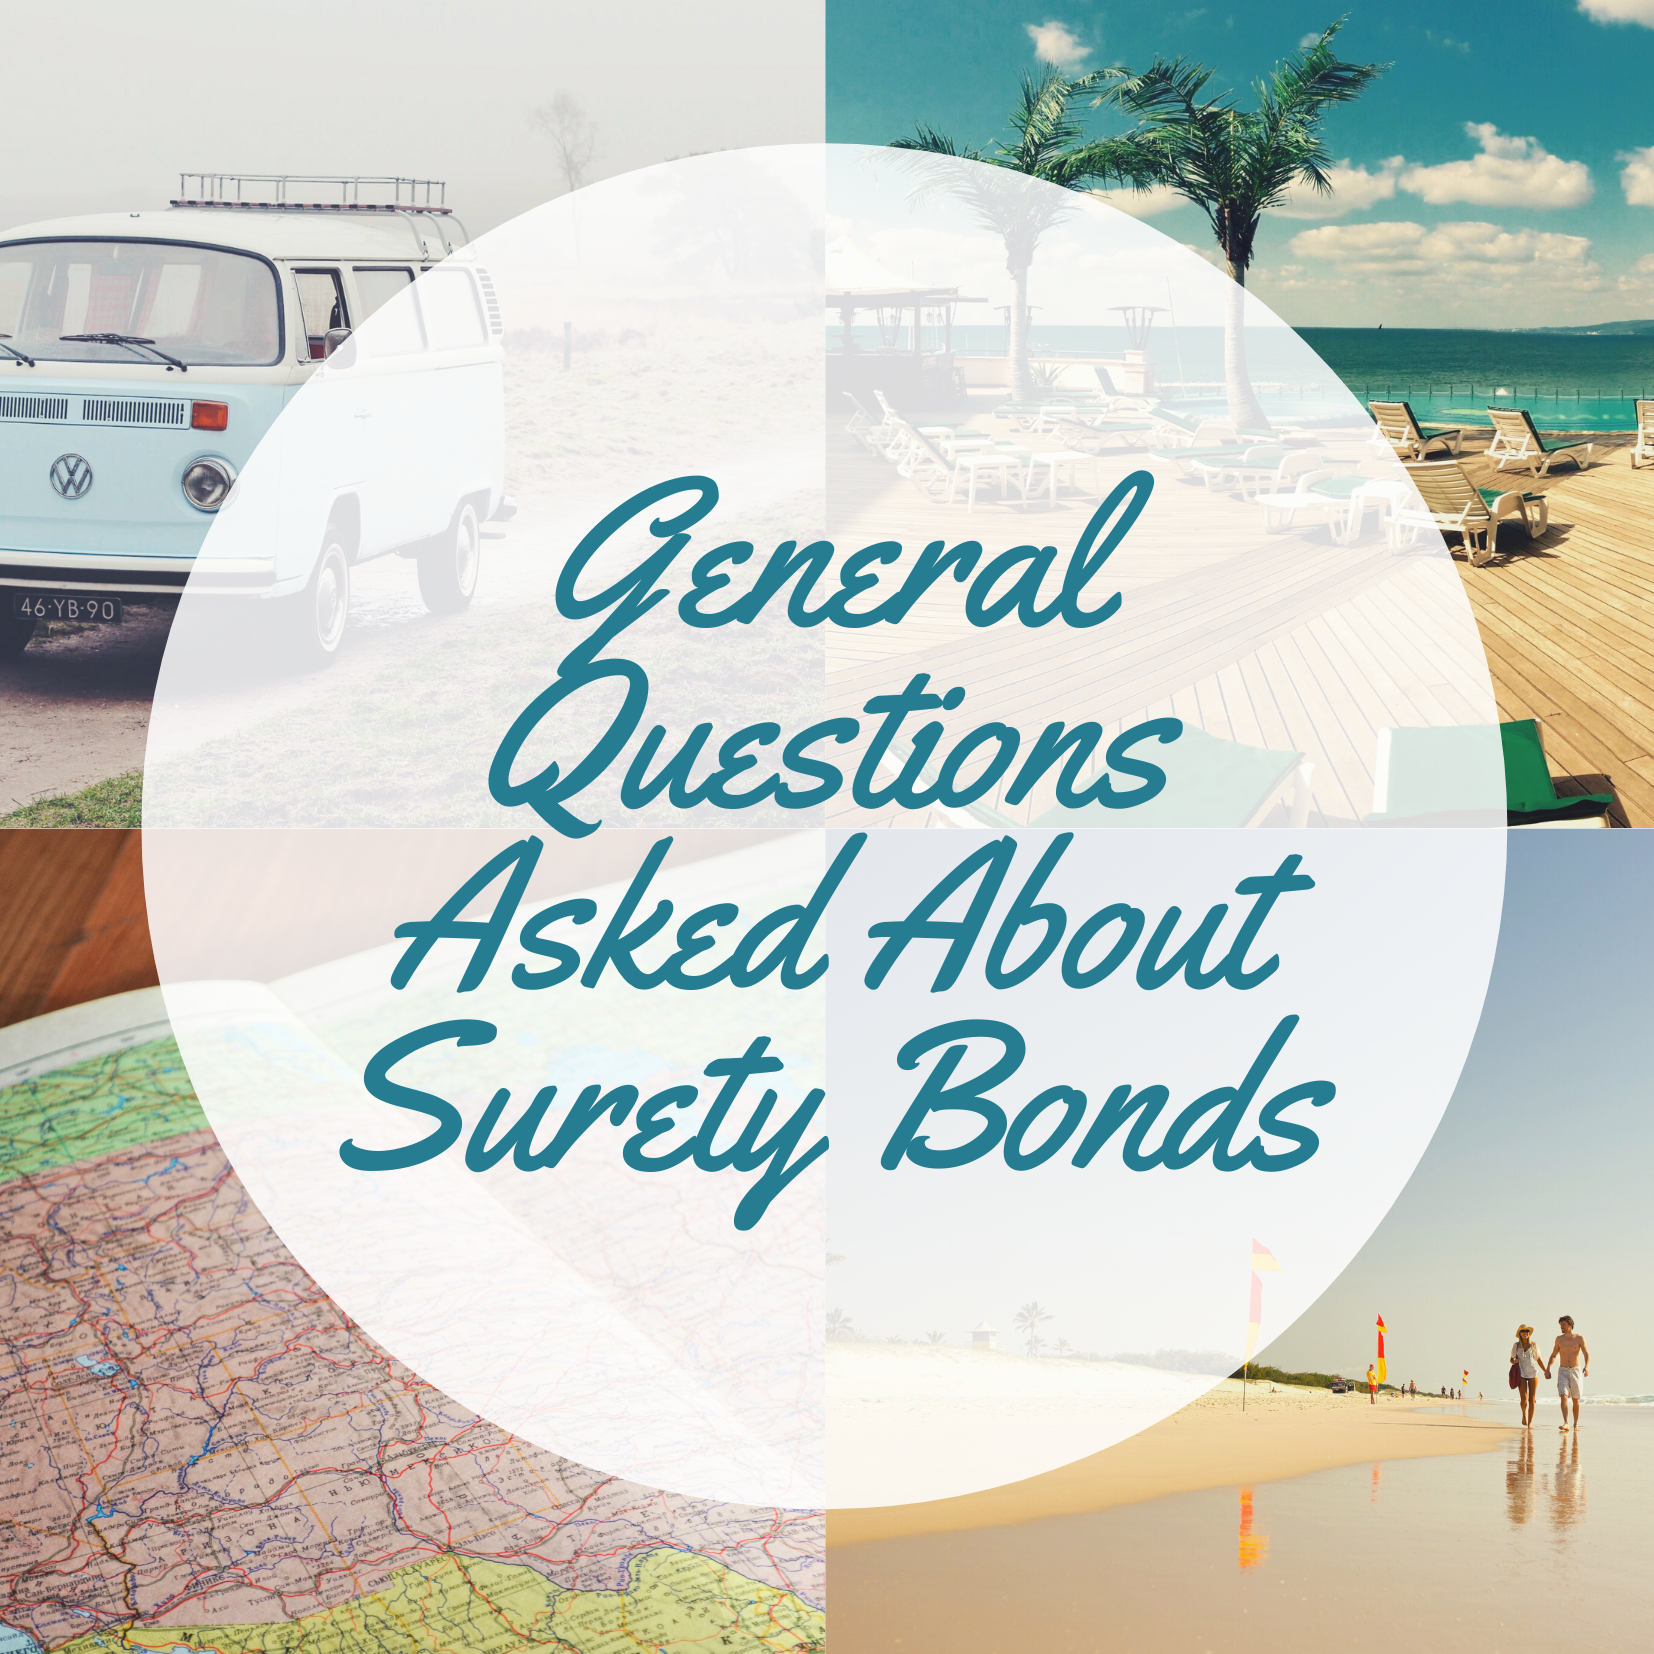 surety bonds - hat are surety bonds and how do they work - beach vibe photos